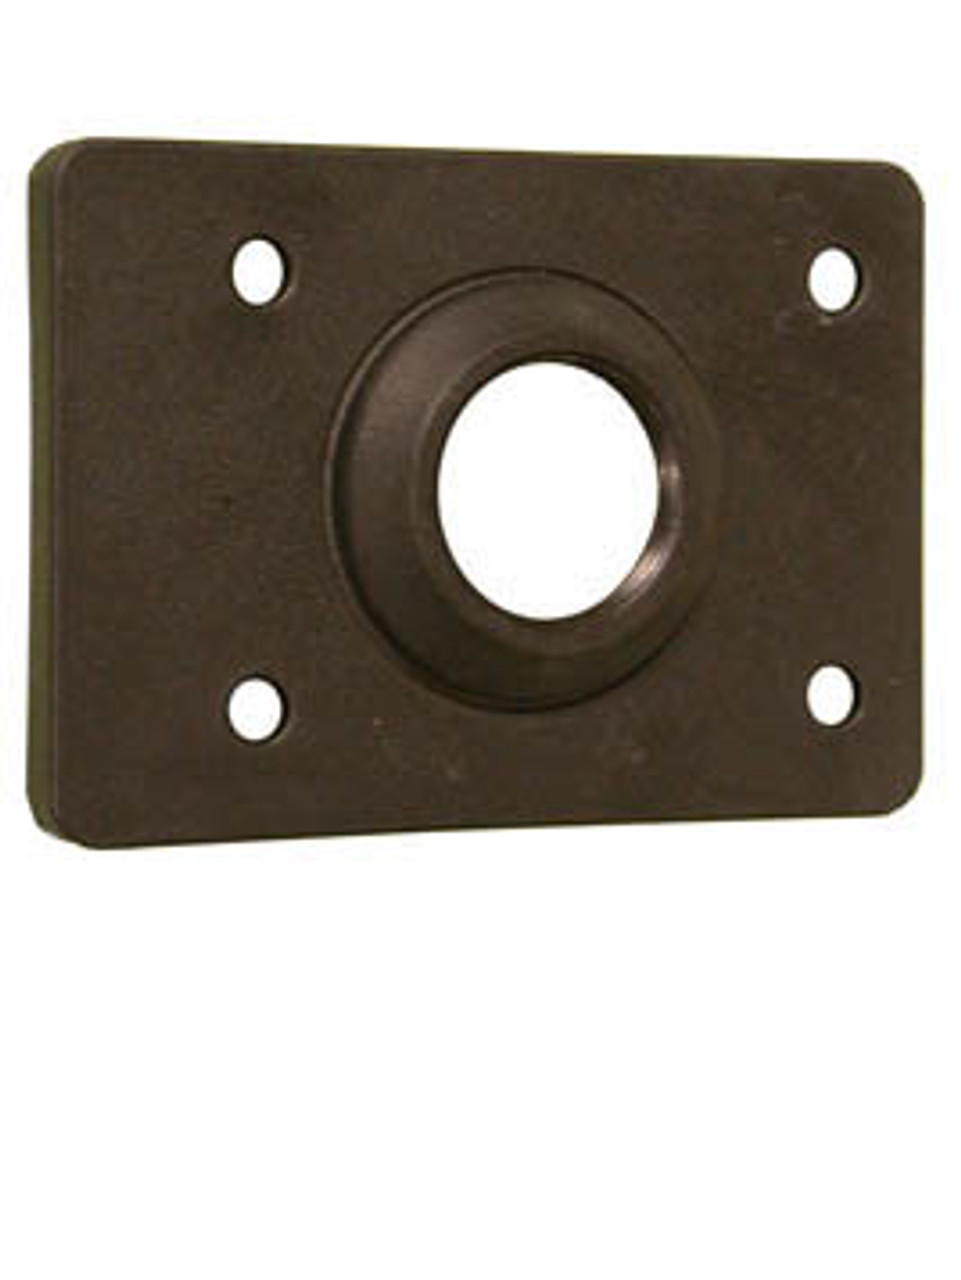 12557 --- Demco Master Cylinder Cover Plate